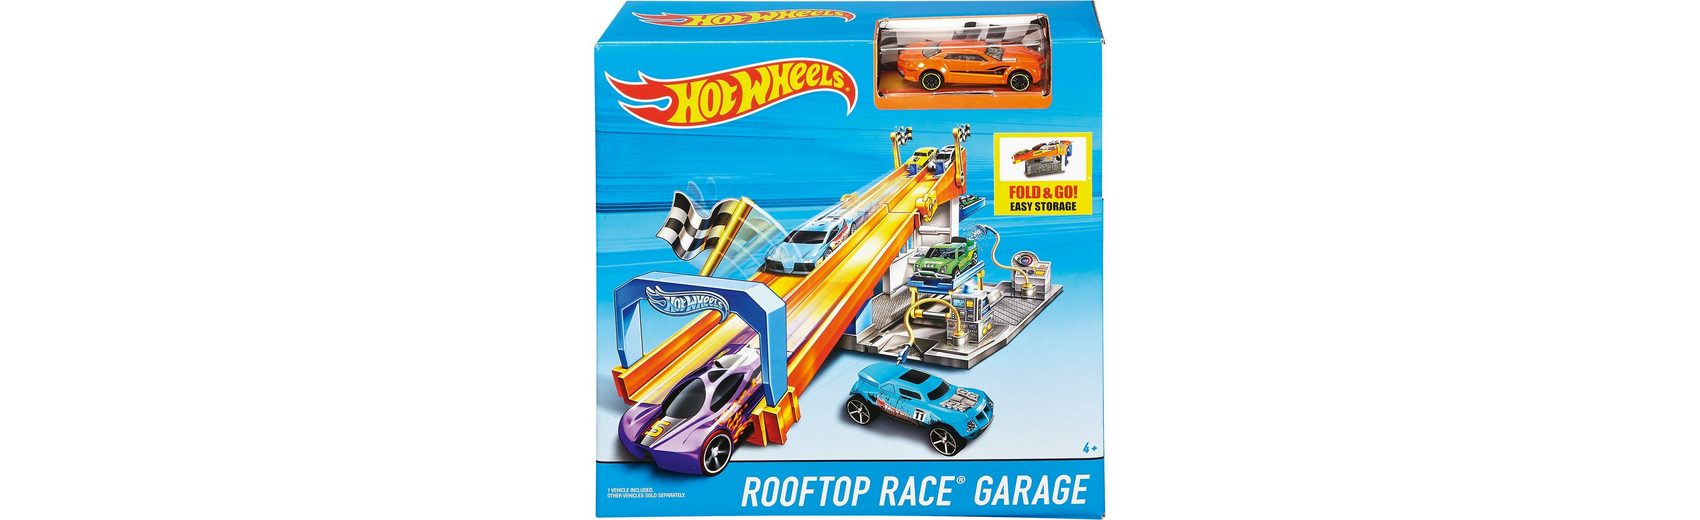 Mattel Hot Wheels Tuning Rennbahn exklusiv